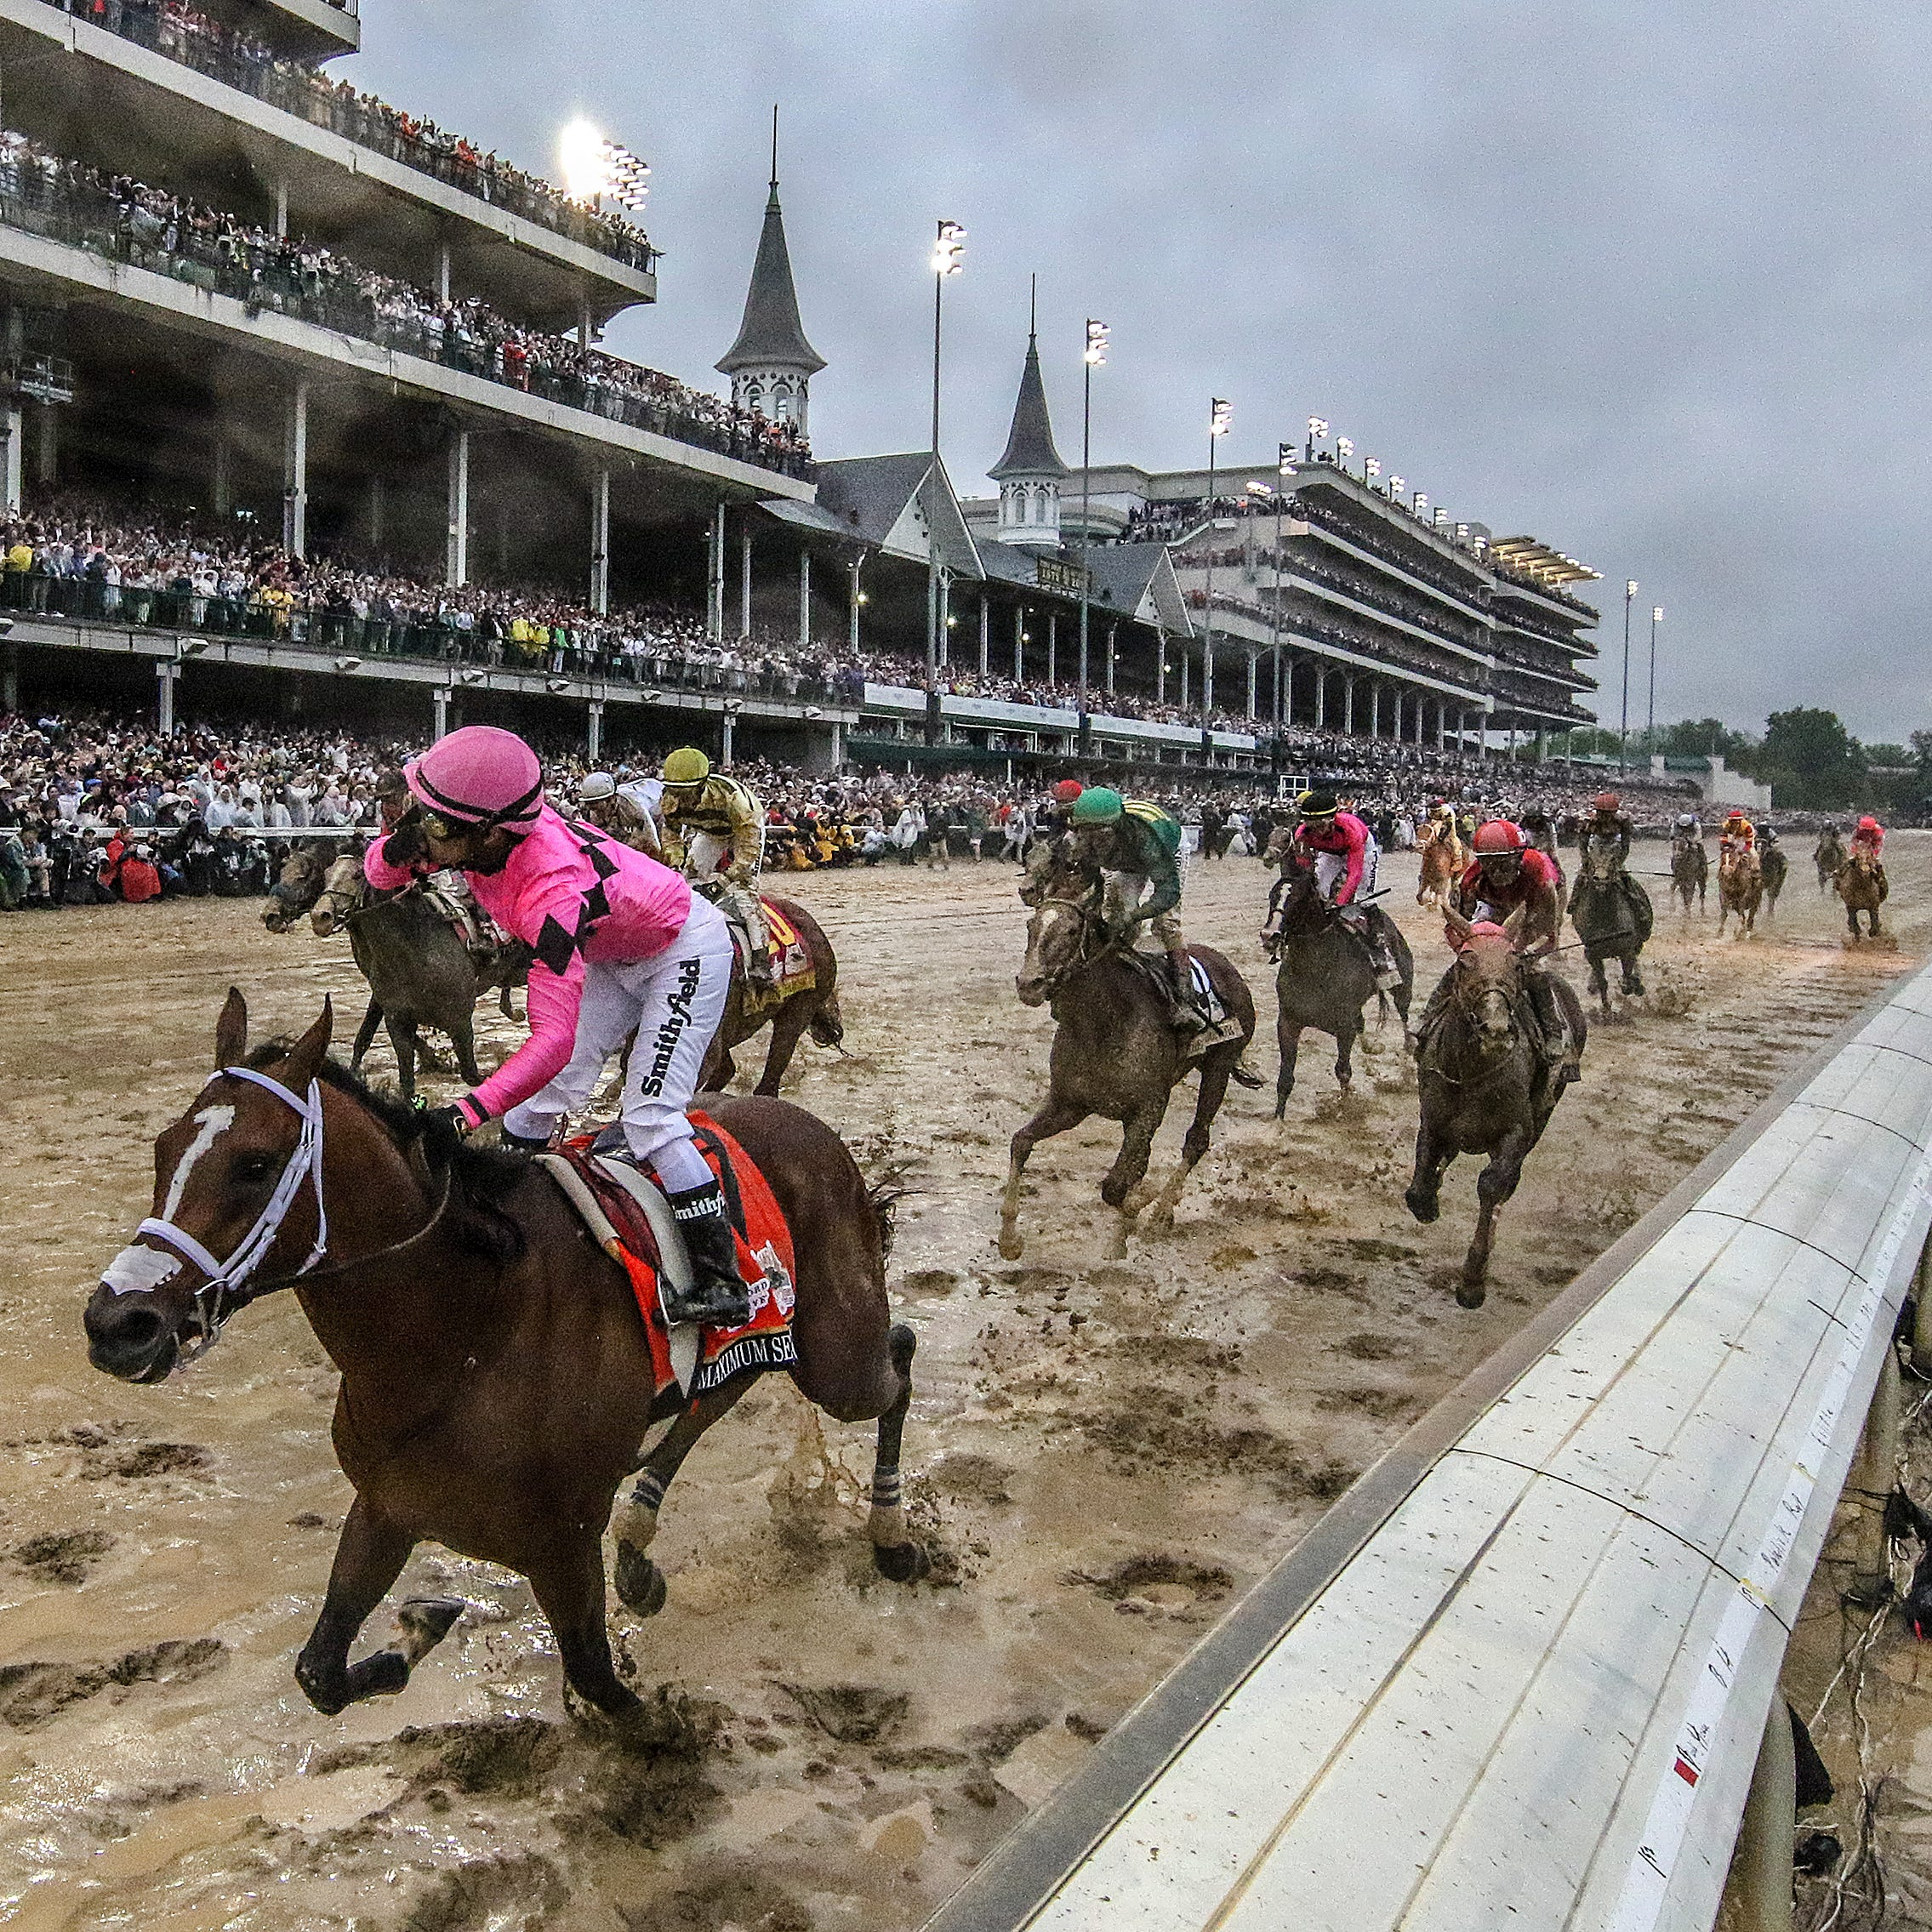 Maximum Security jockey appeals 'unsupported' and 'unduly harsh' Kentucky Derby suspension